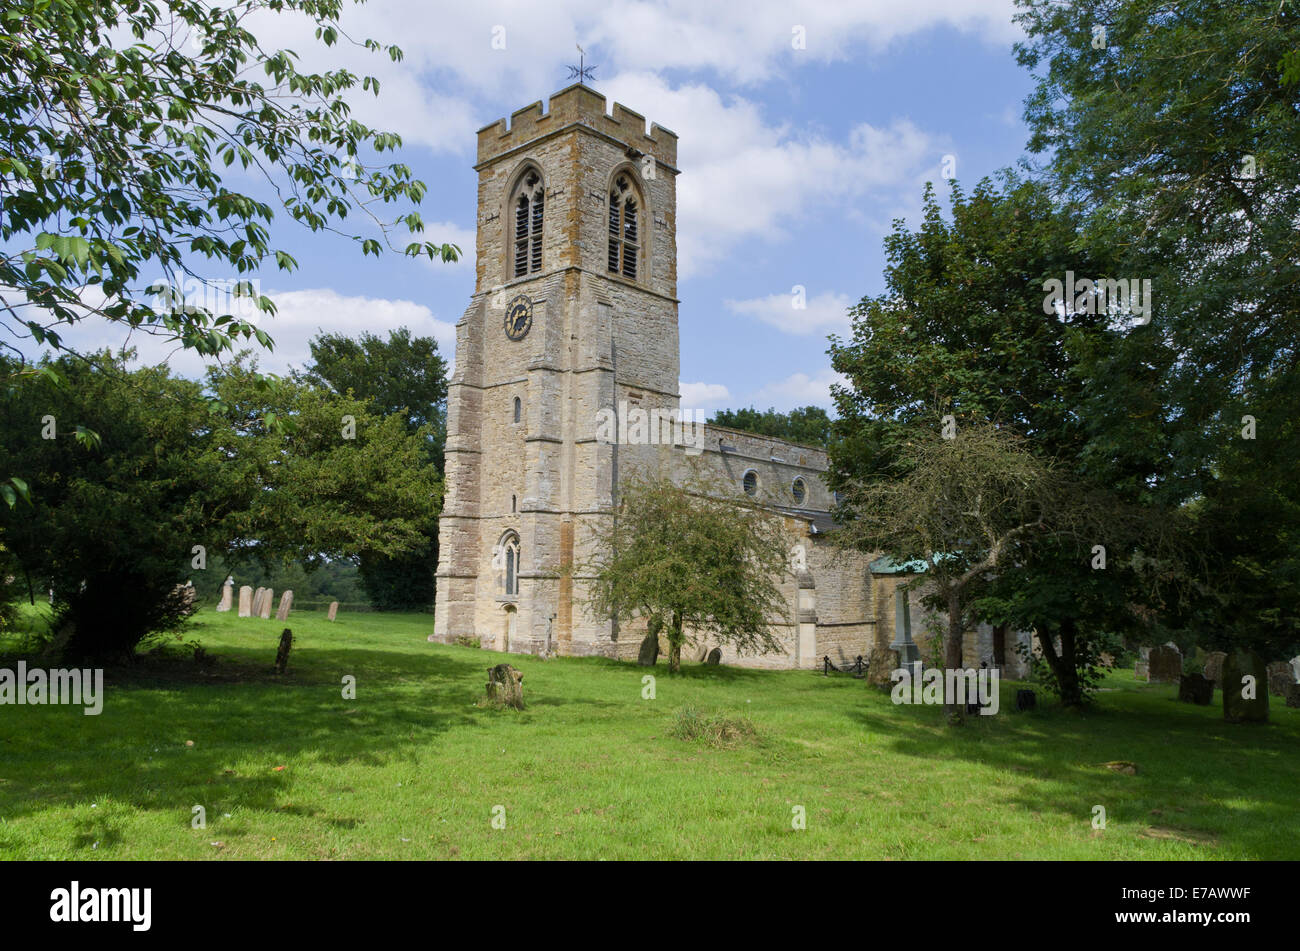 Church of St Mary the Virgin, Stoke Bruerne, UK - Stock Image